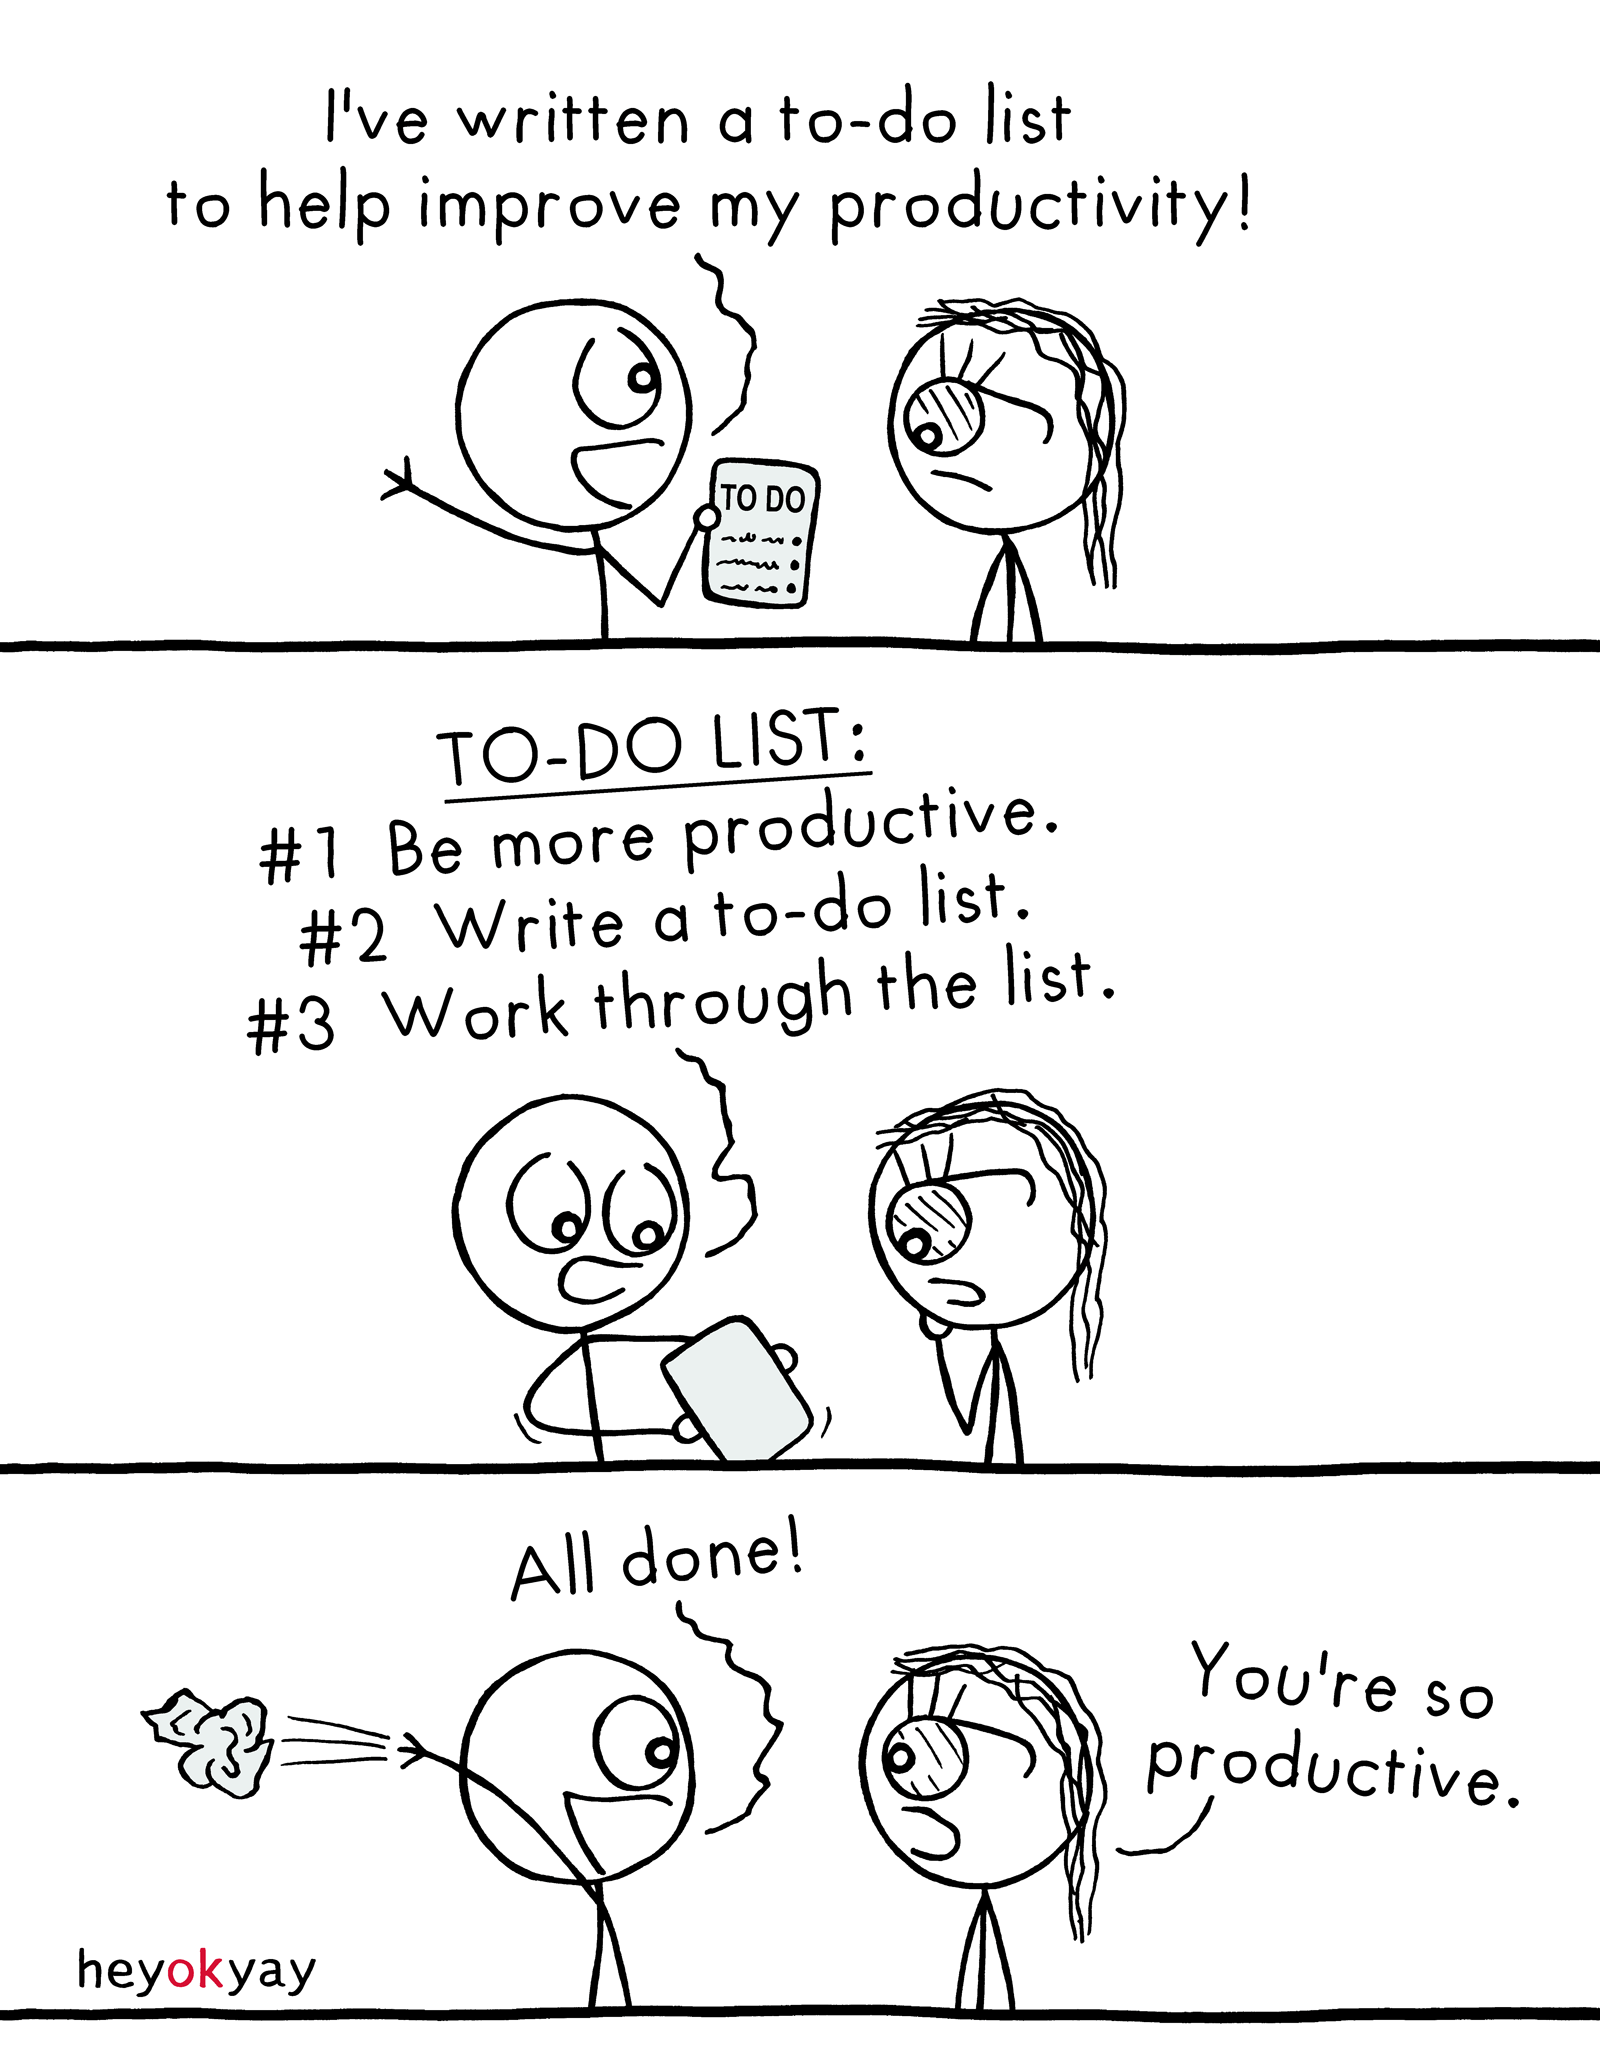 Productivity heyokyay comic